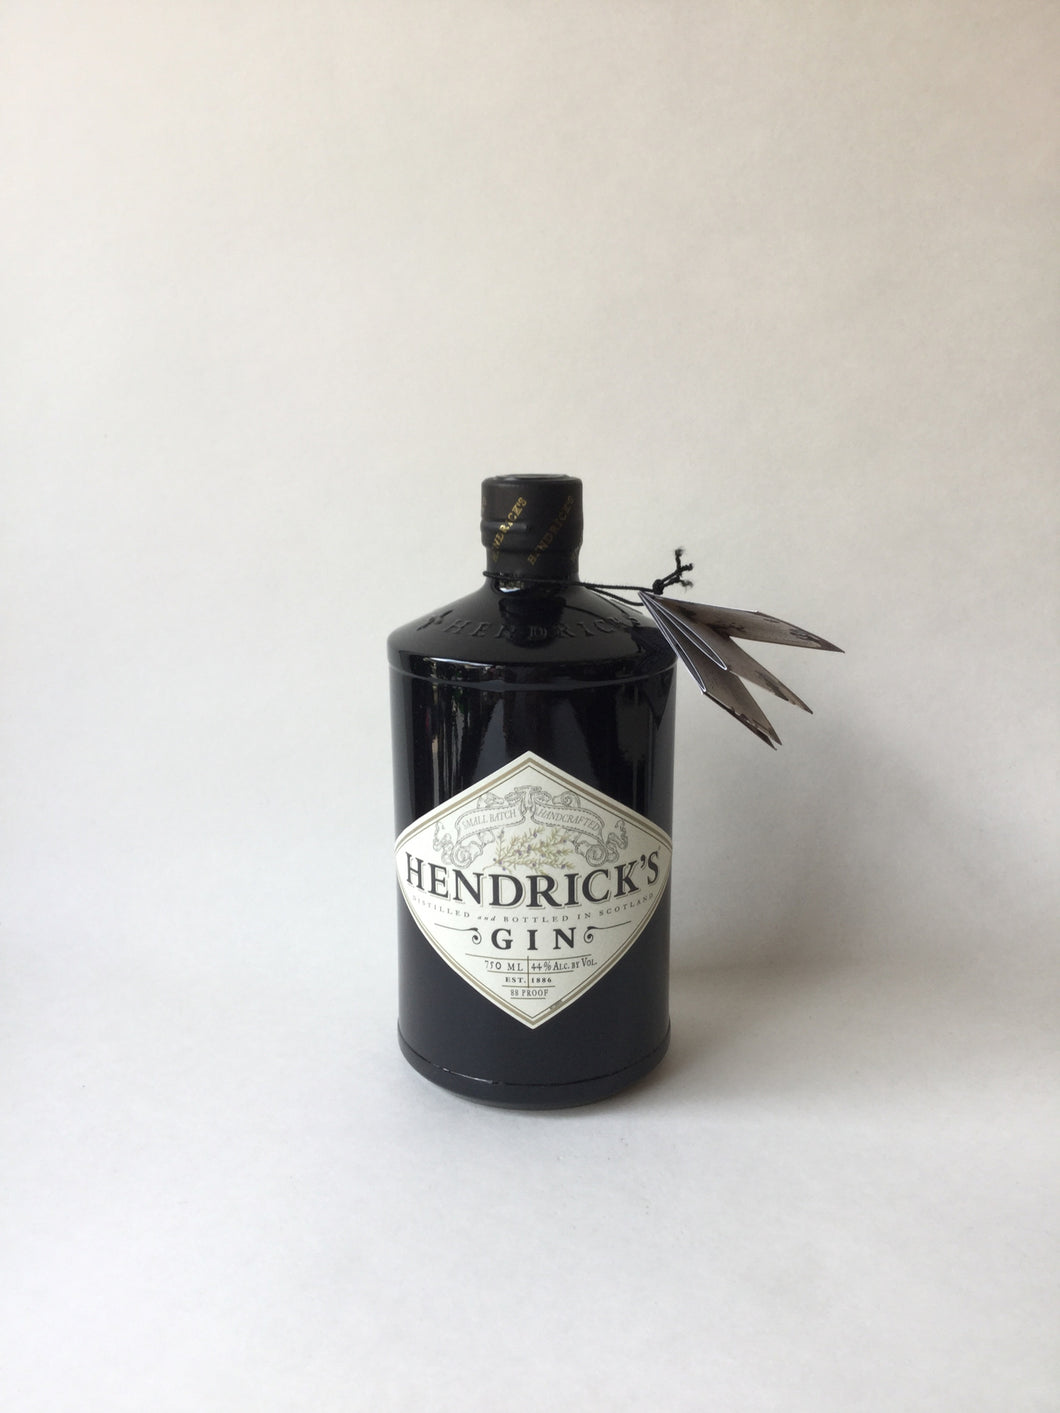 Hendrick's Small Batch Gin, Scotland, 750ml - Frankly Wines